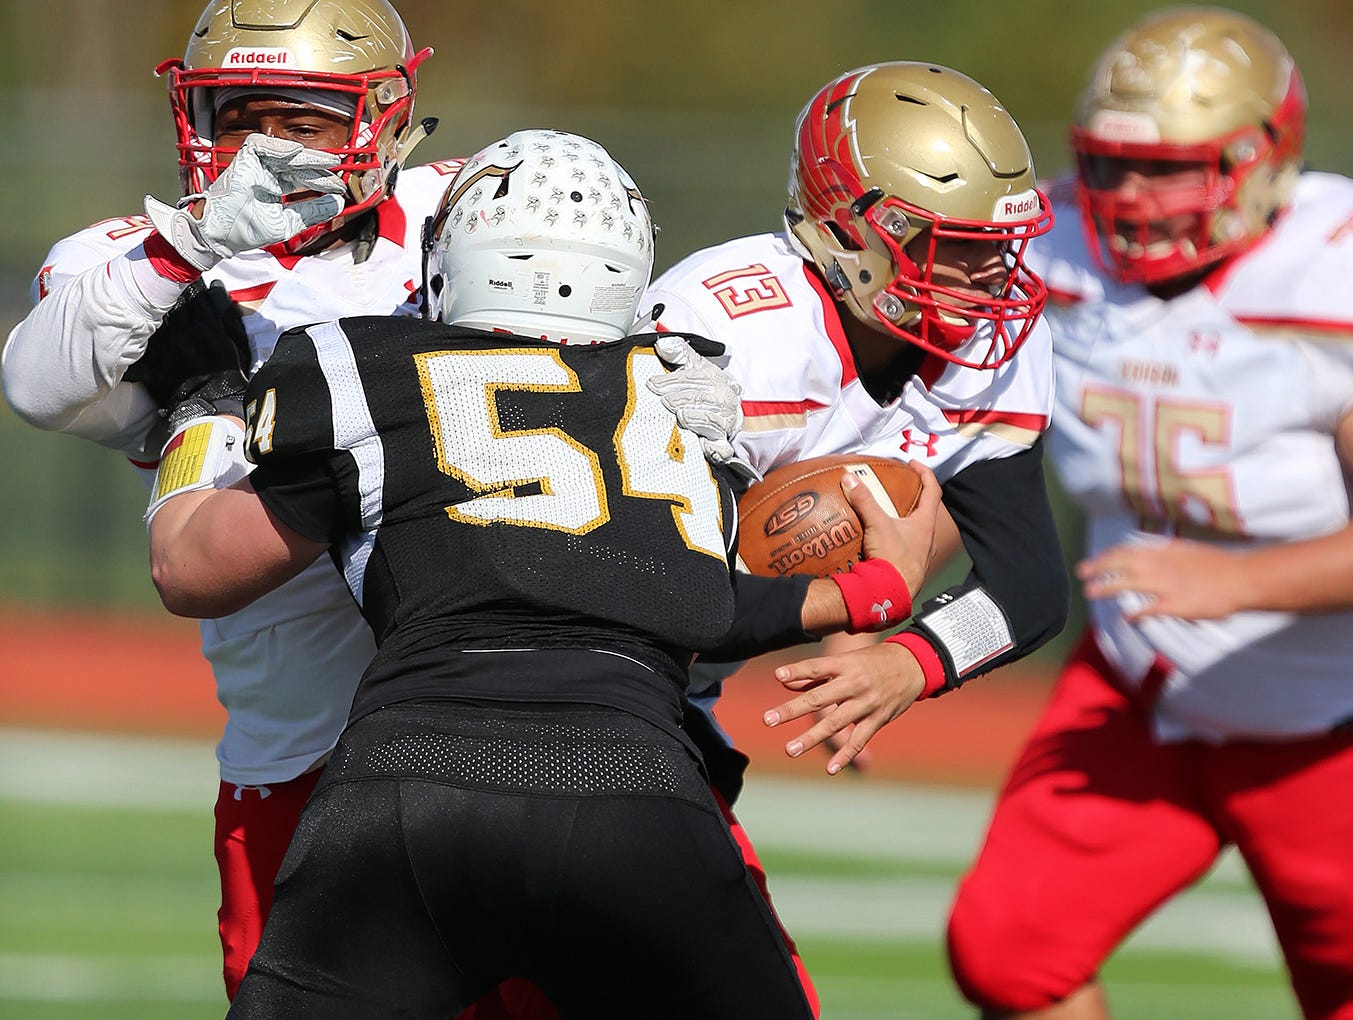 Edison at South Brunswick football in the first round of Central Group V. Edison quartrback  #13 Lucas Loffredo in the first half Saturday November 3, 2018 photo by Ed Pagliarini